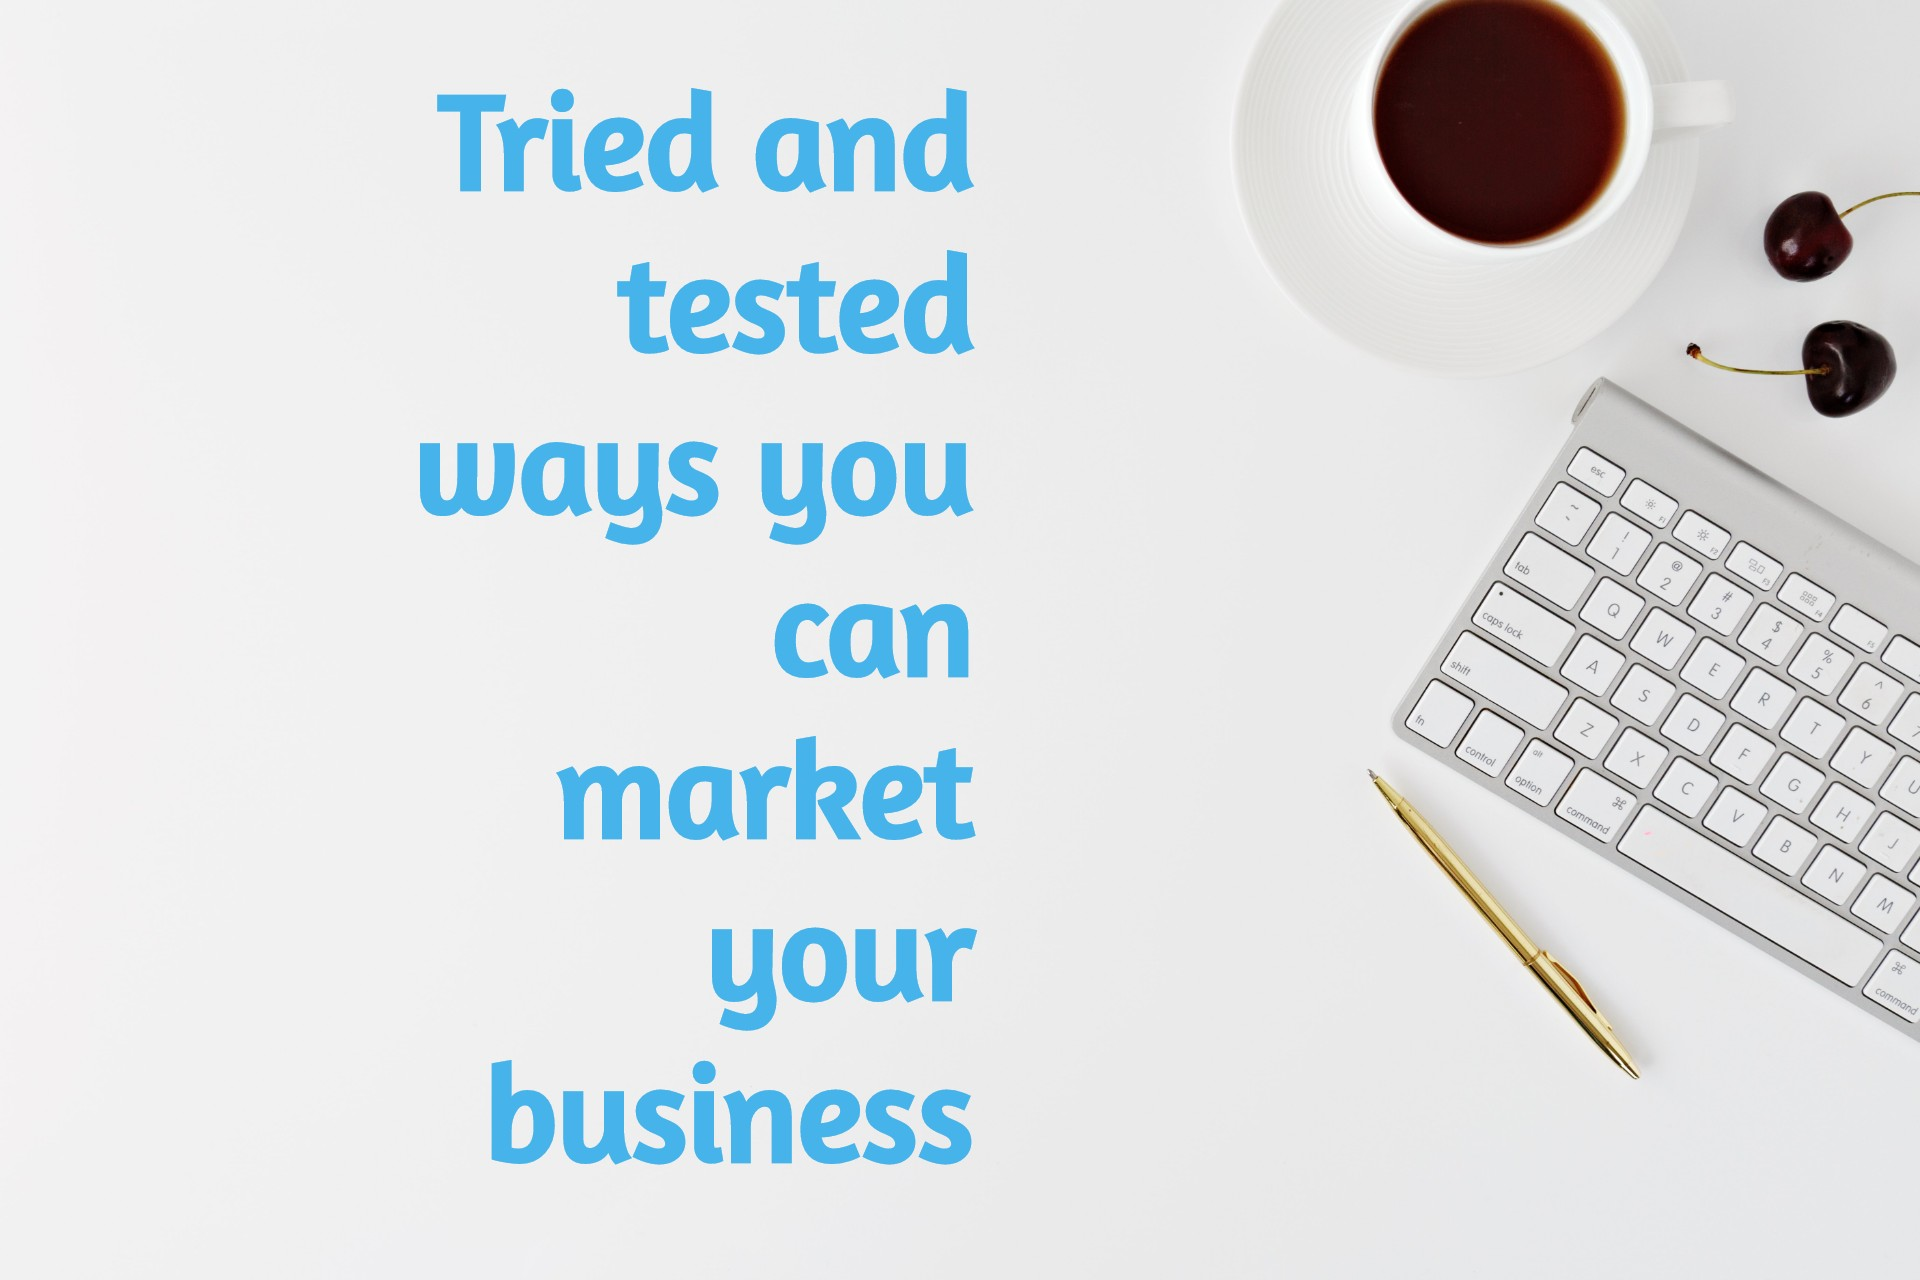 Tried and tested ways you can market your business